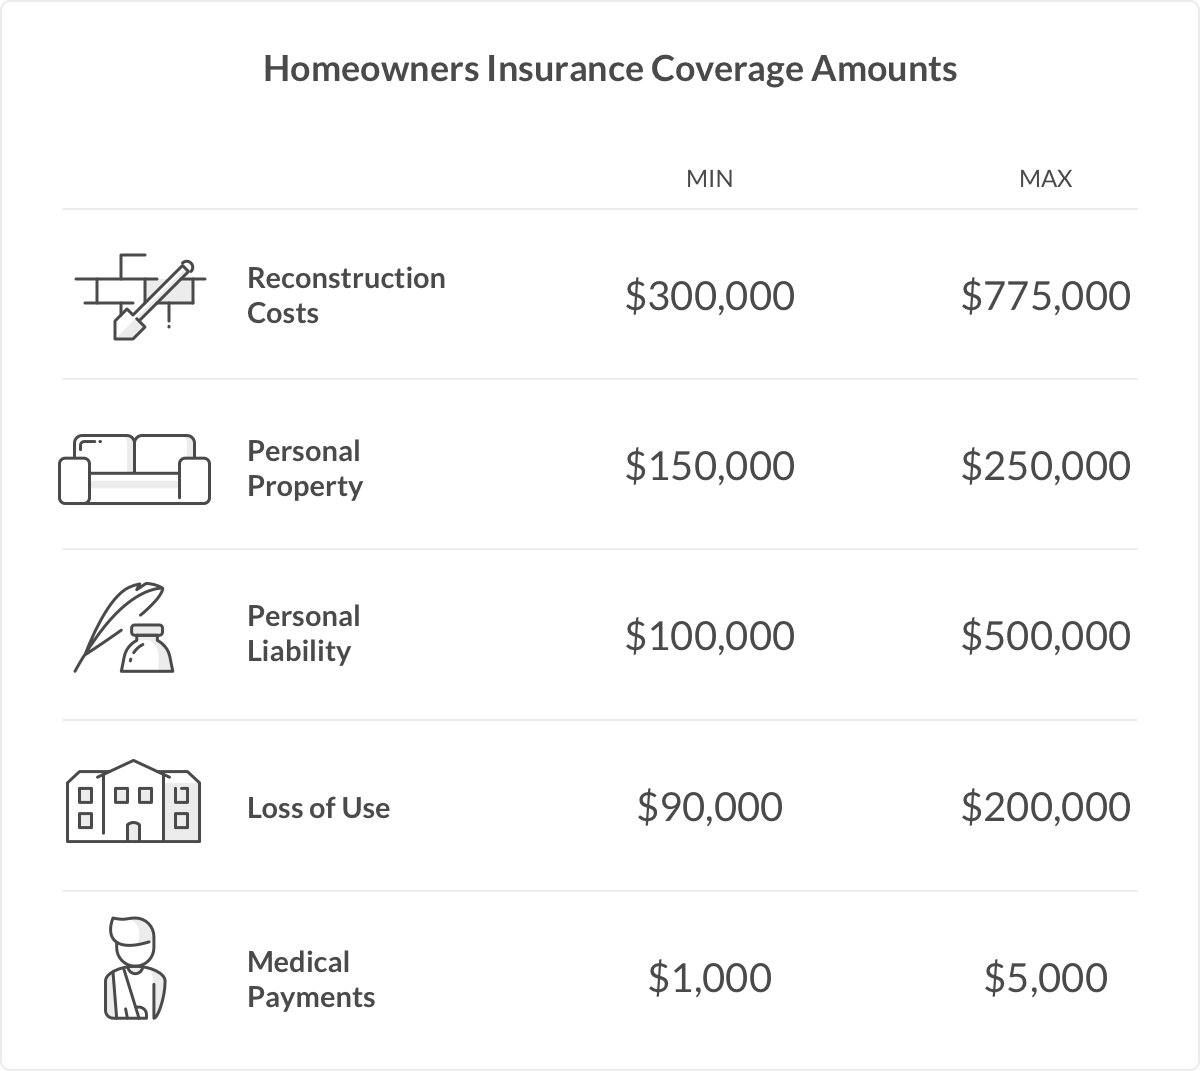 Homeowners Insurance Explained Homeowners Insurance Coverage